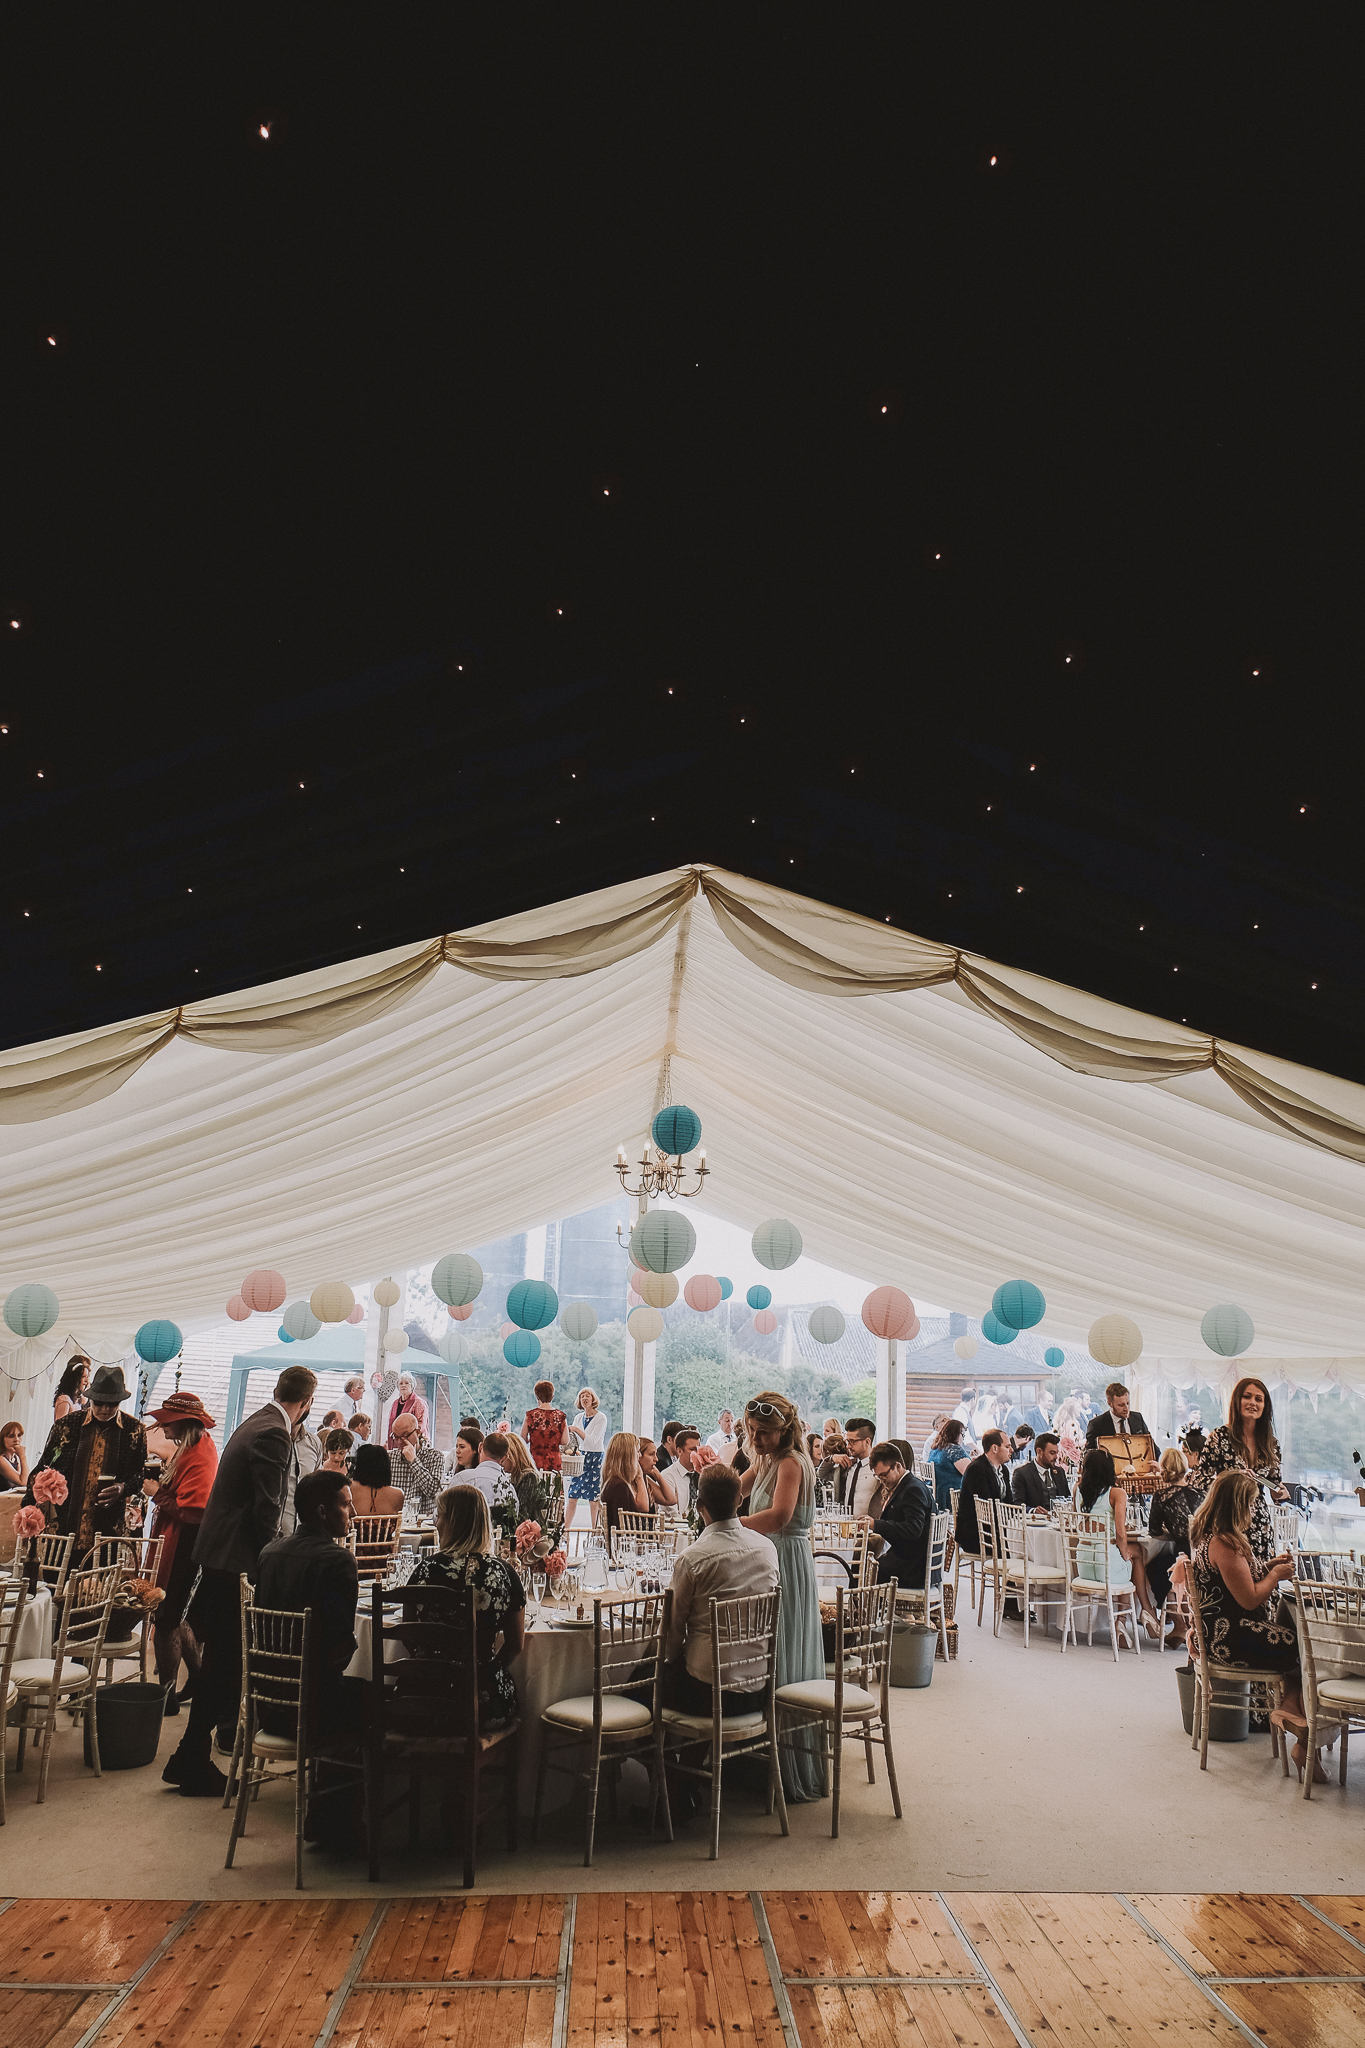 Dramatic photo of wedding guests sitting in marquee with twinkling lights in the darkness above them